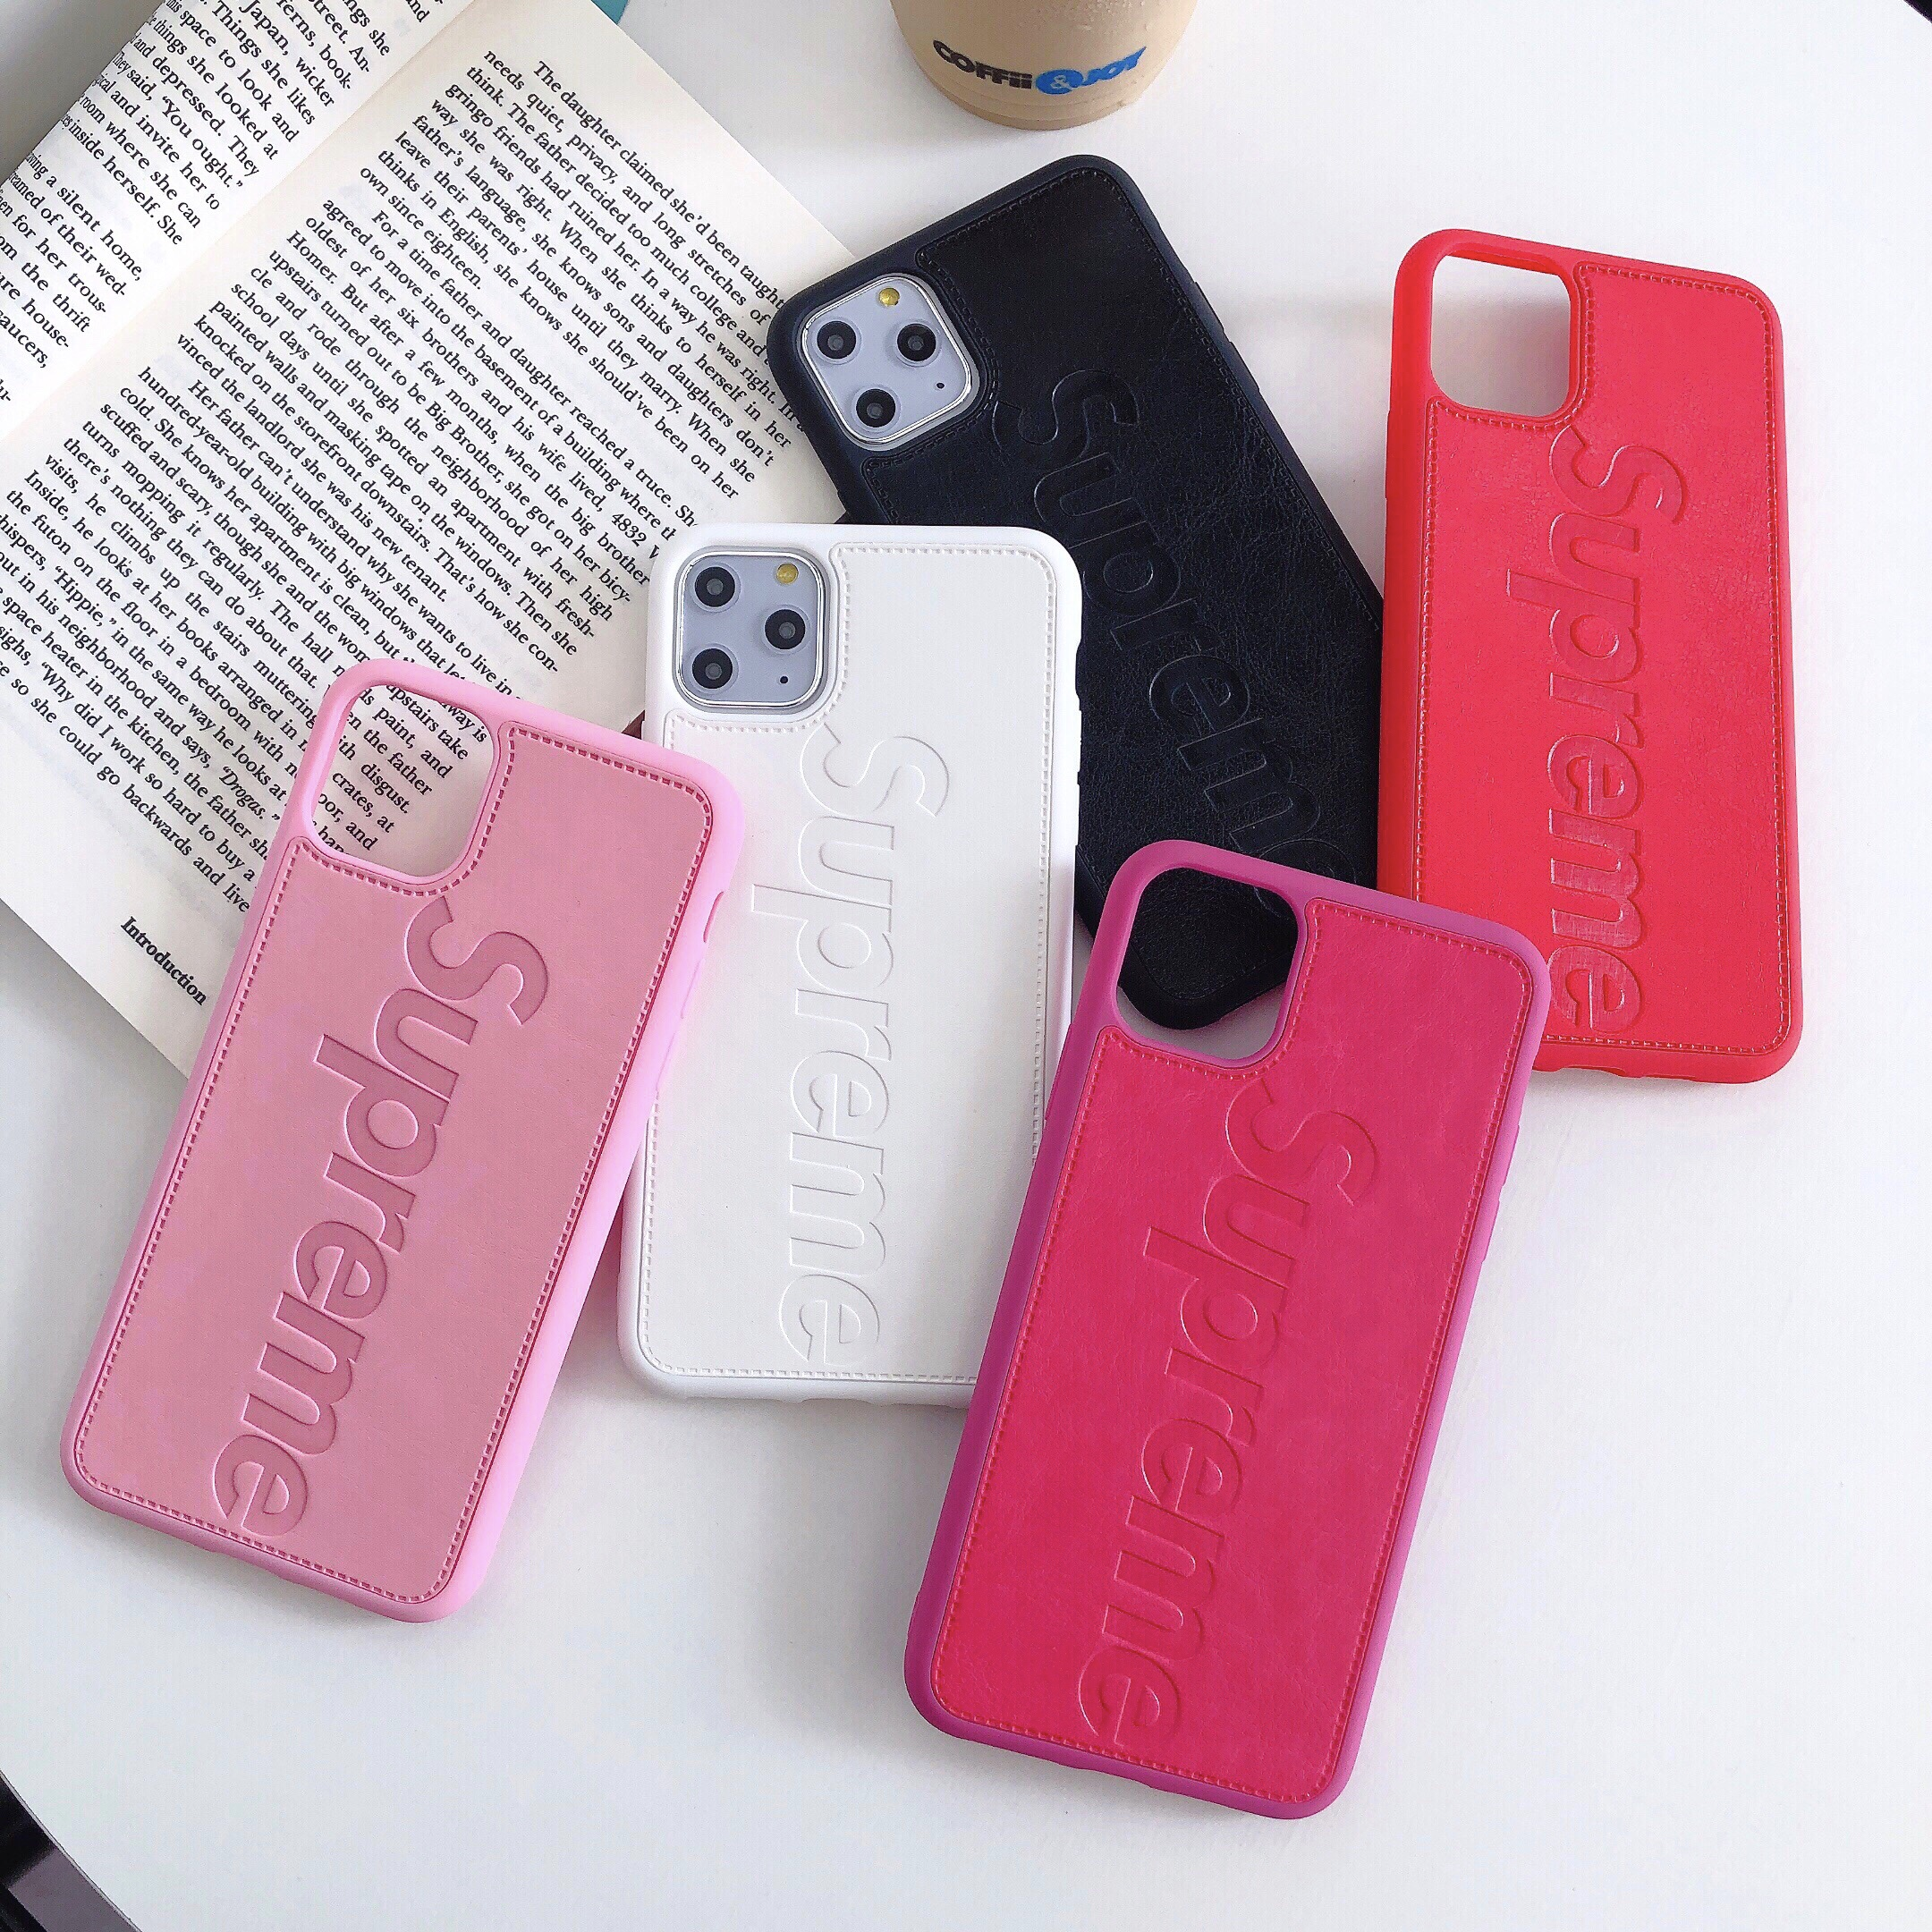 Supreme Iphone6/6s, 6/6sPlus, 7, 7Plus, 8, 8Plus Case 3 Color